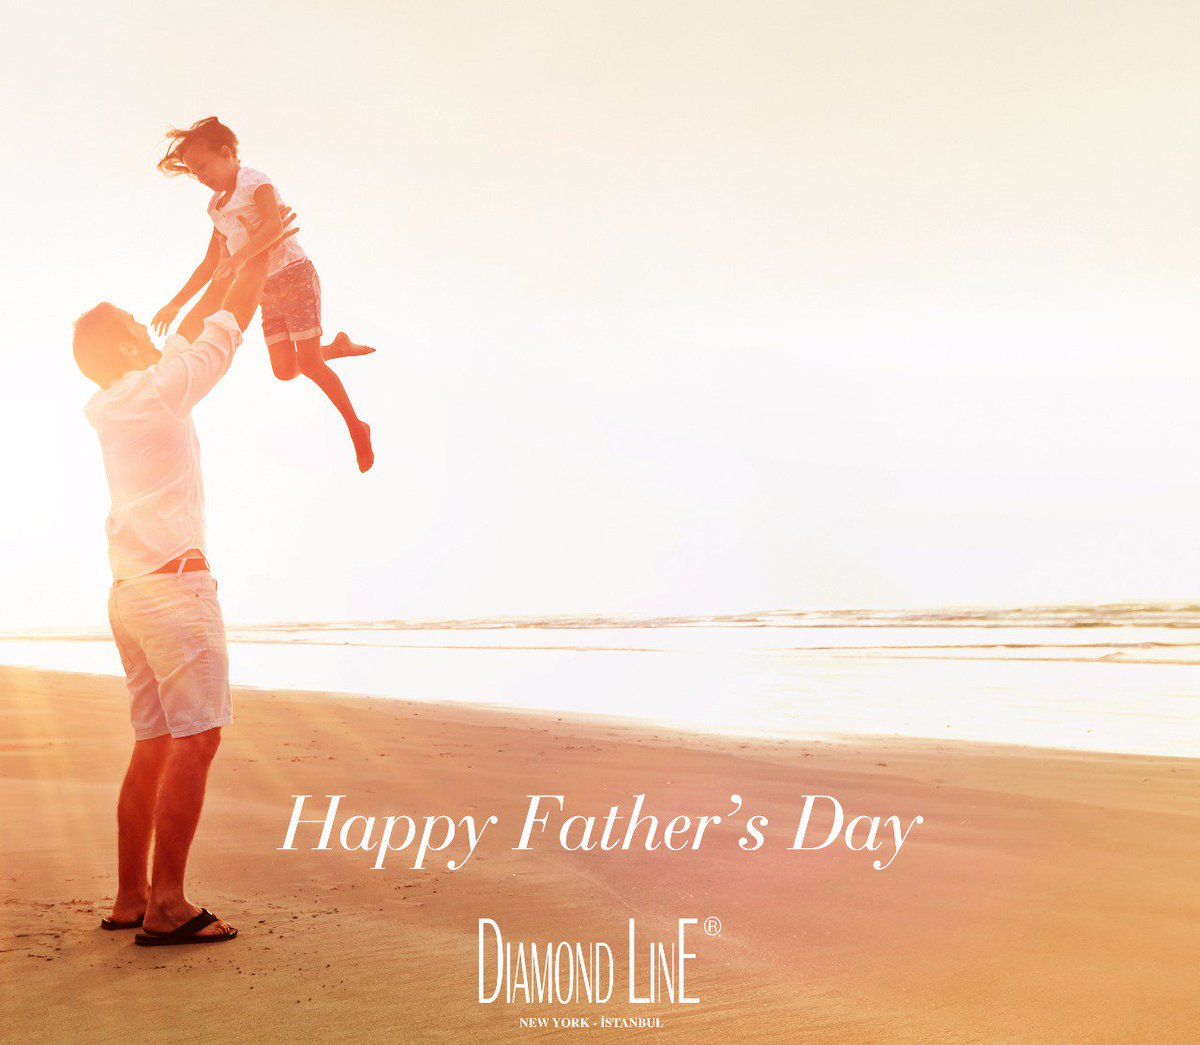 Happy Father's Day... https://t.co/ToVCr7ay9r